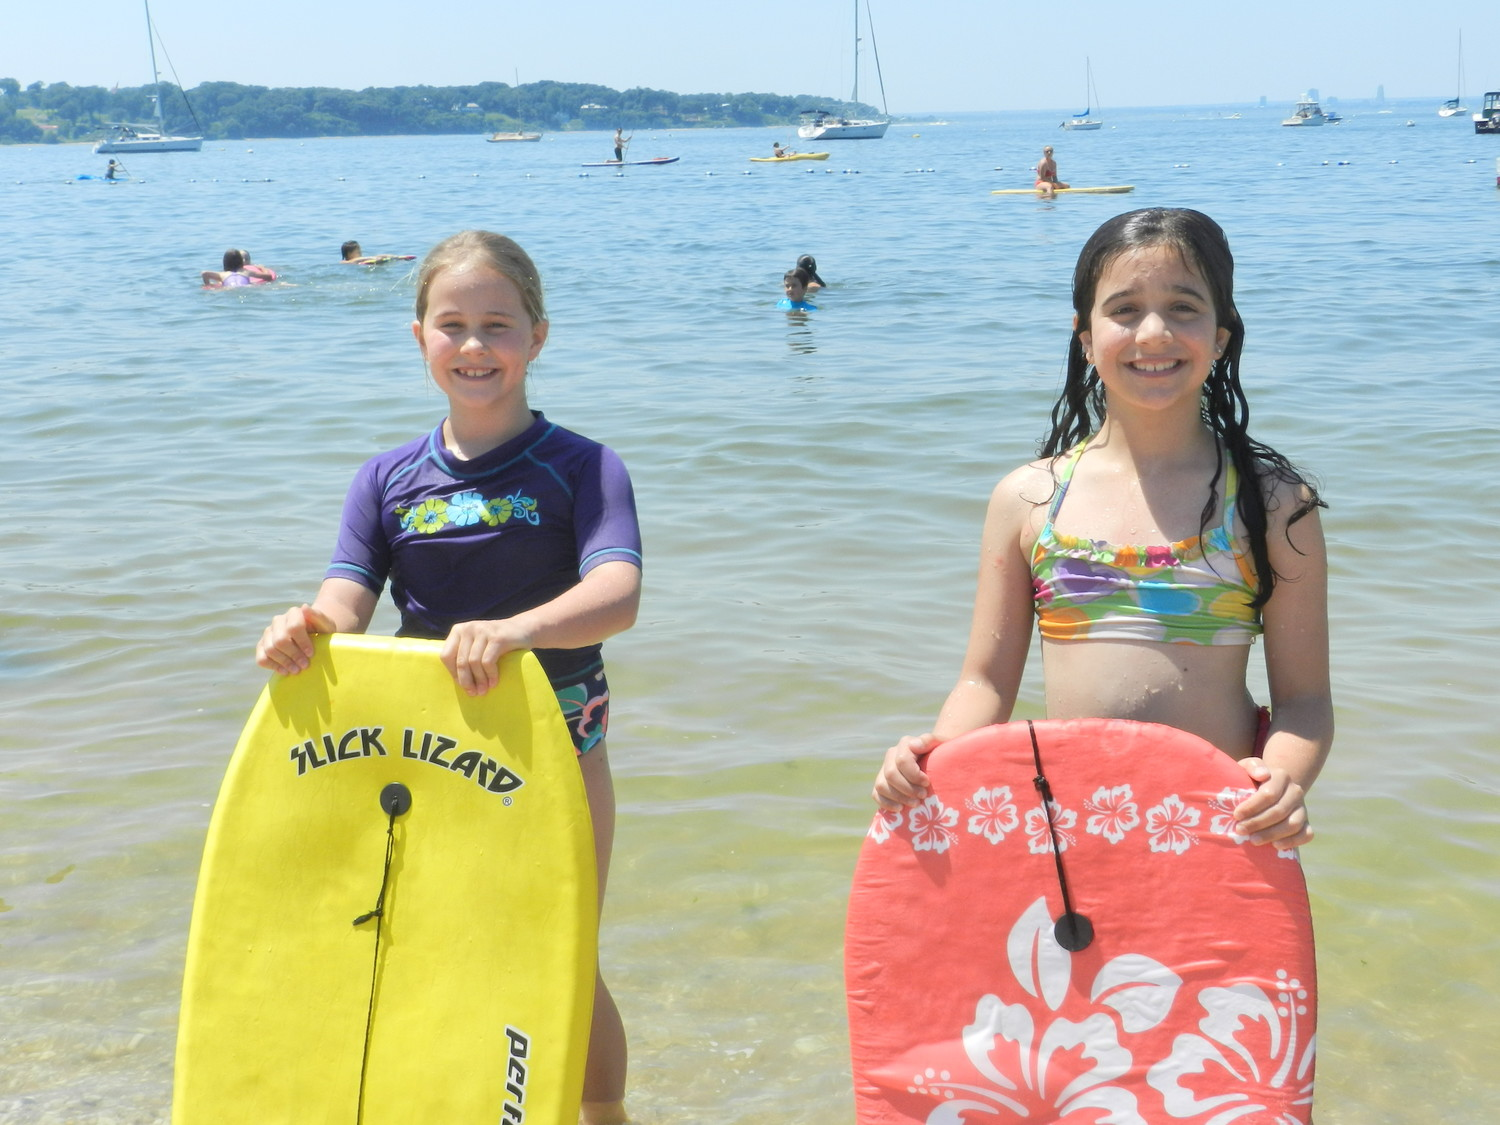 Lucy Sanborn, left, and Nicolletta Kenney, both 9, brought their boogie boards to BeachFest to catch some waves.